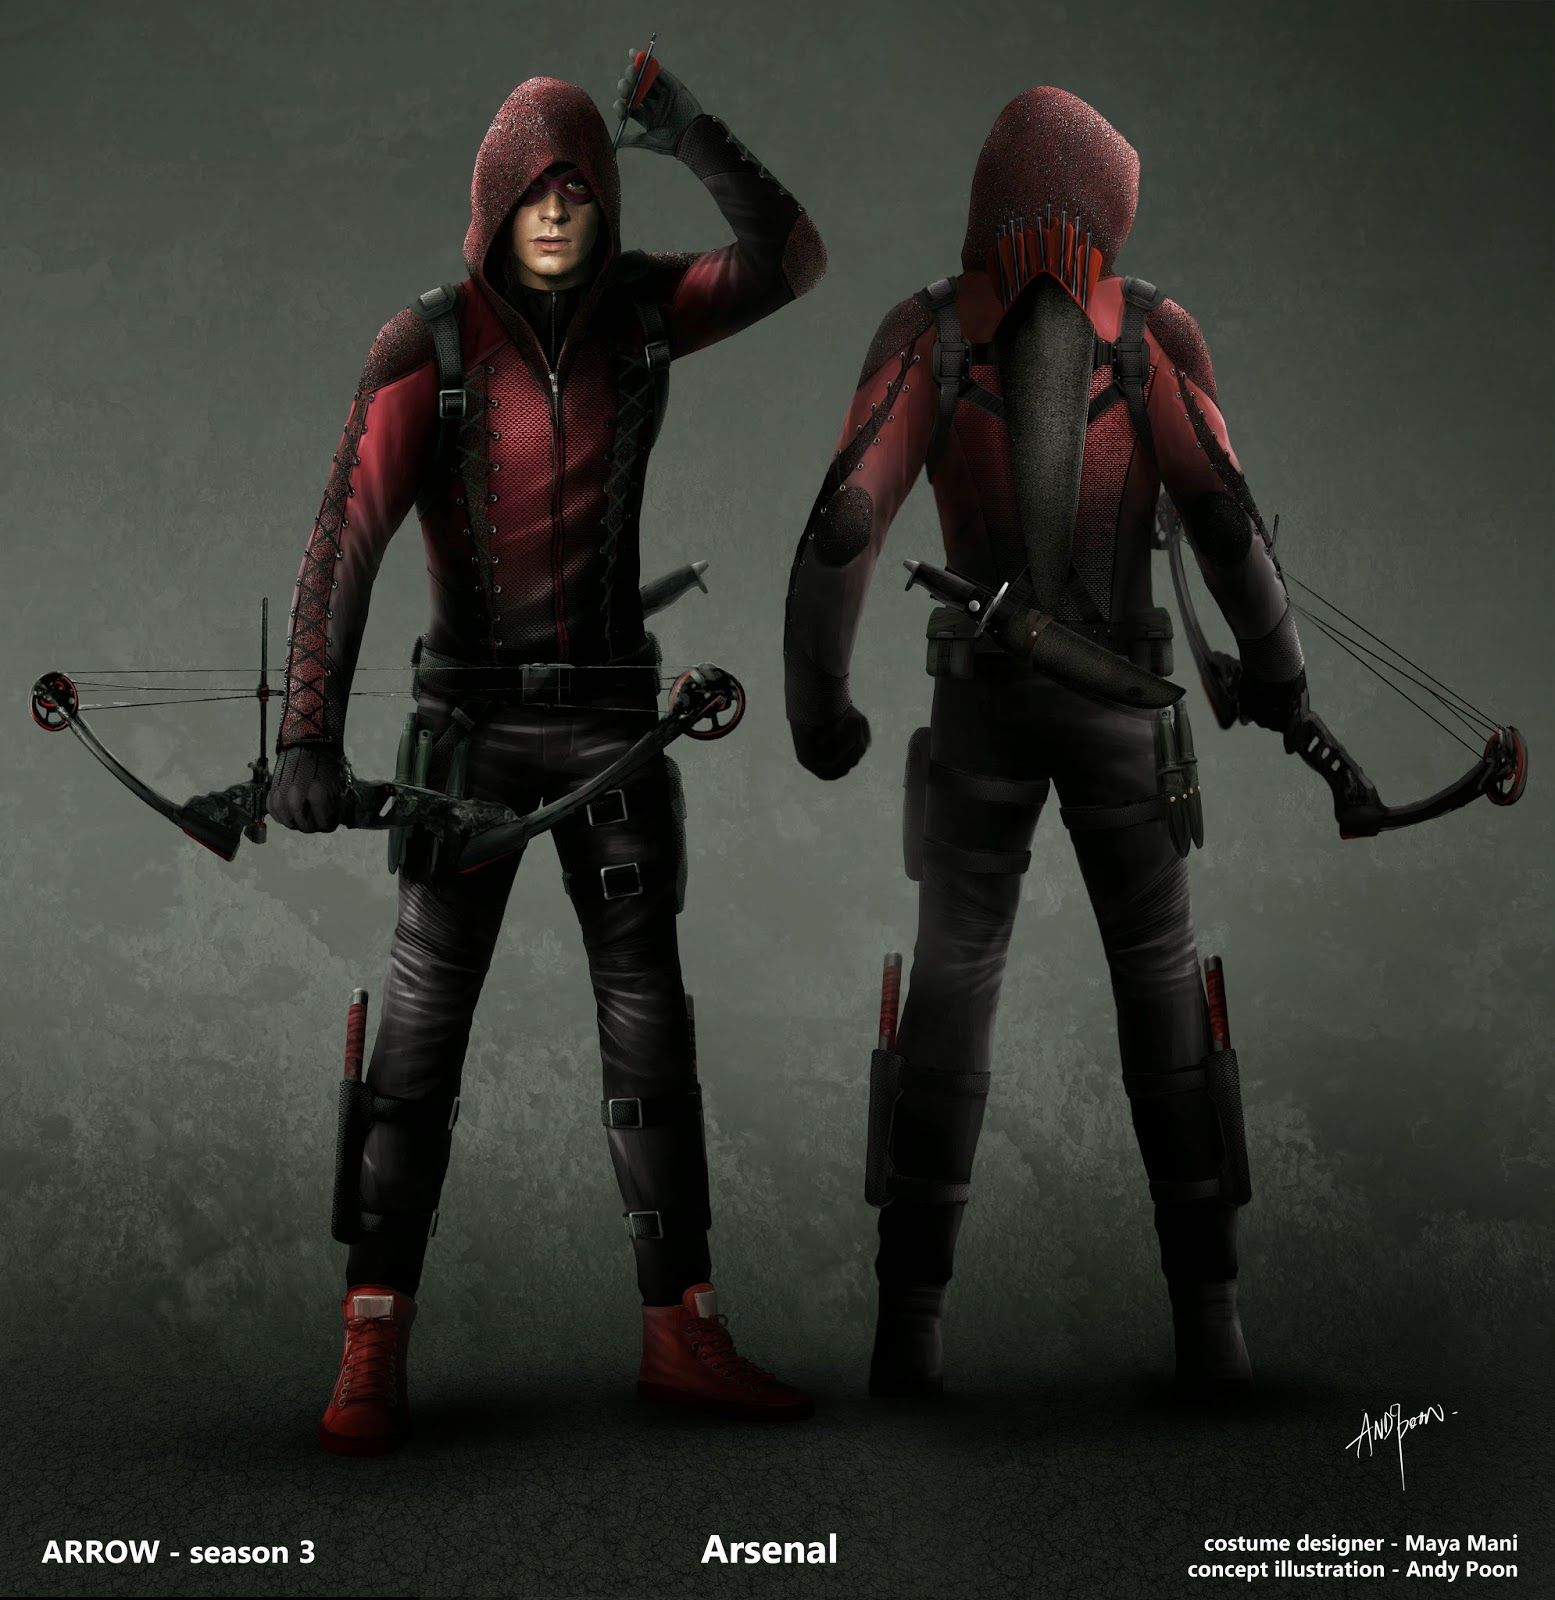 Arsenal Roy Harper Arrow Concept Art ARROW FLASH